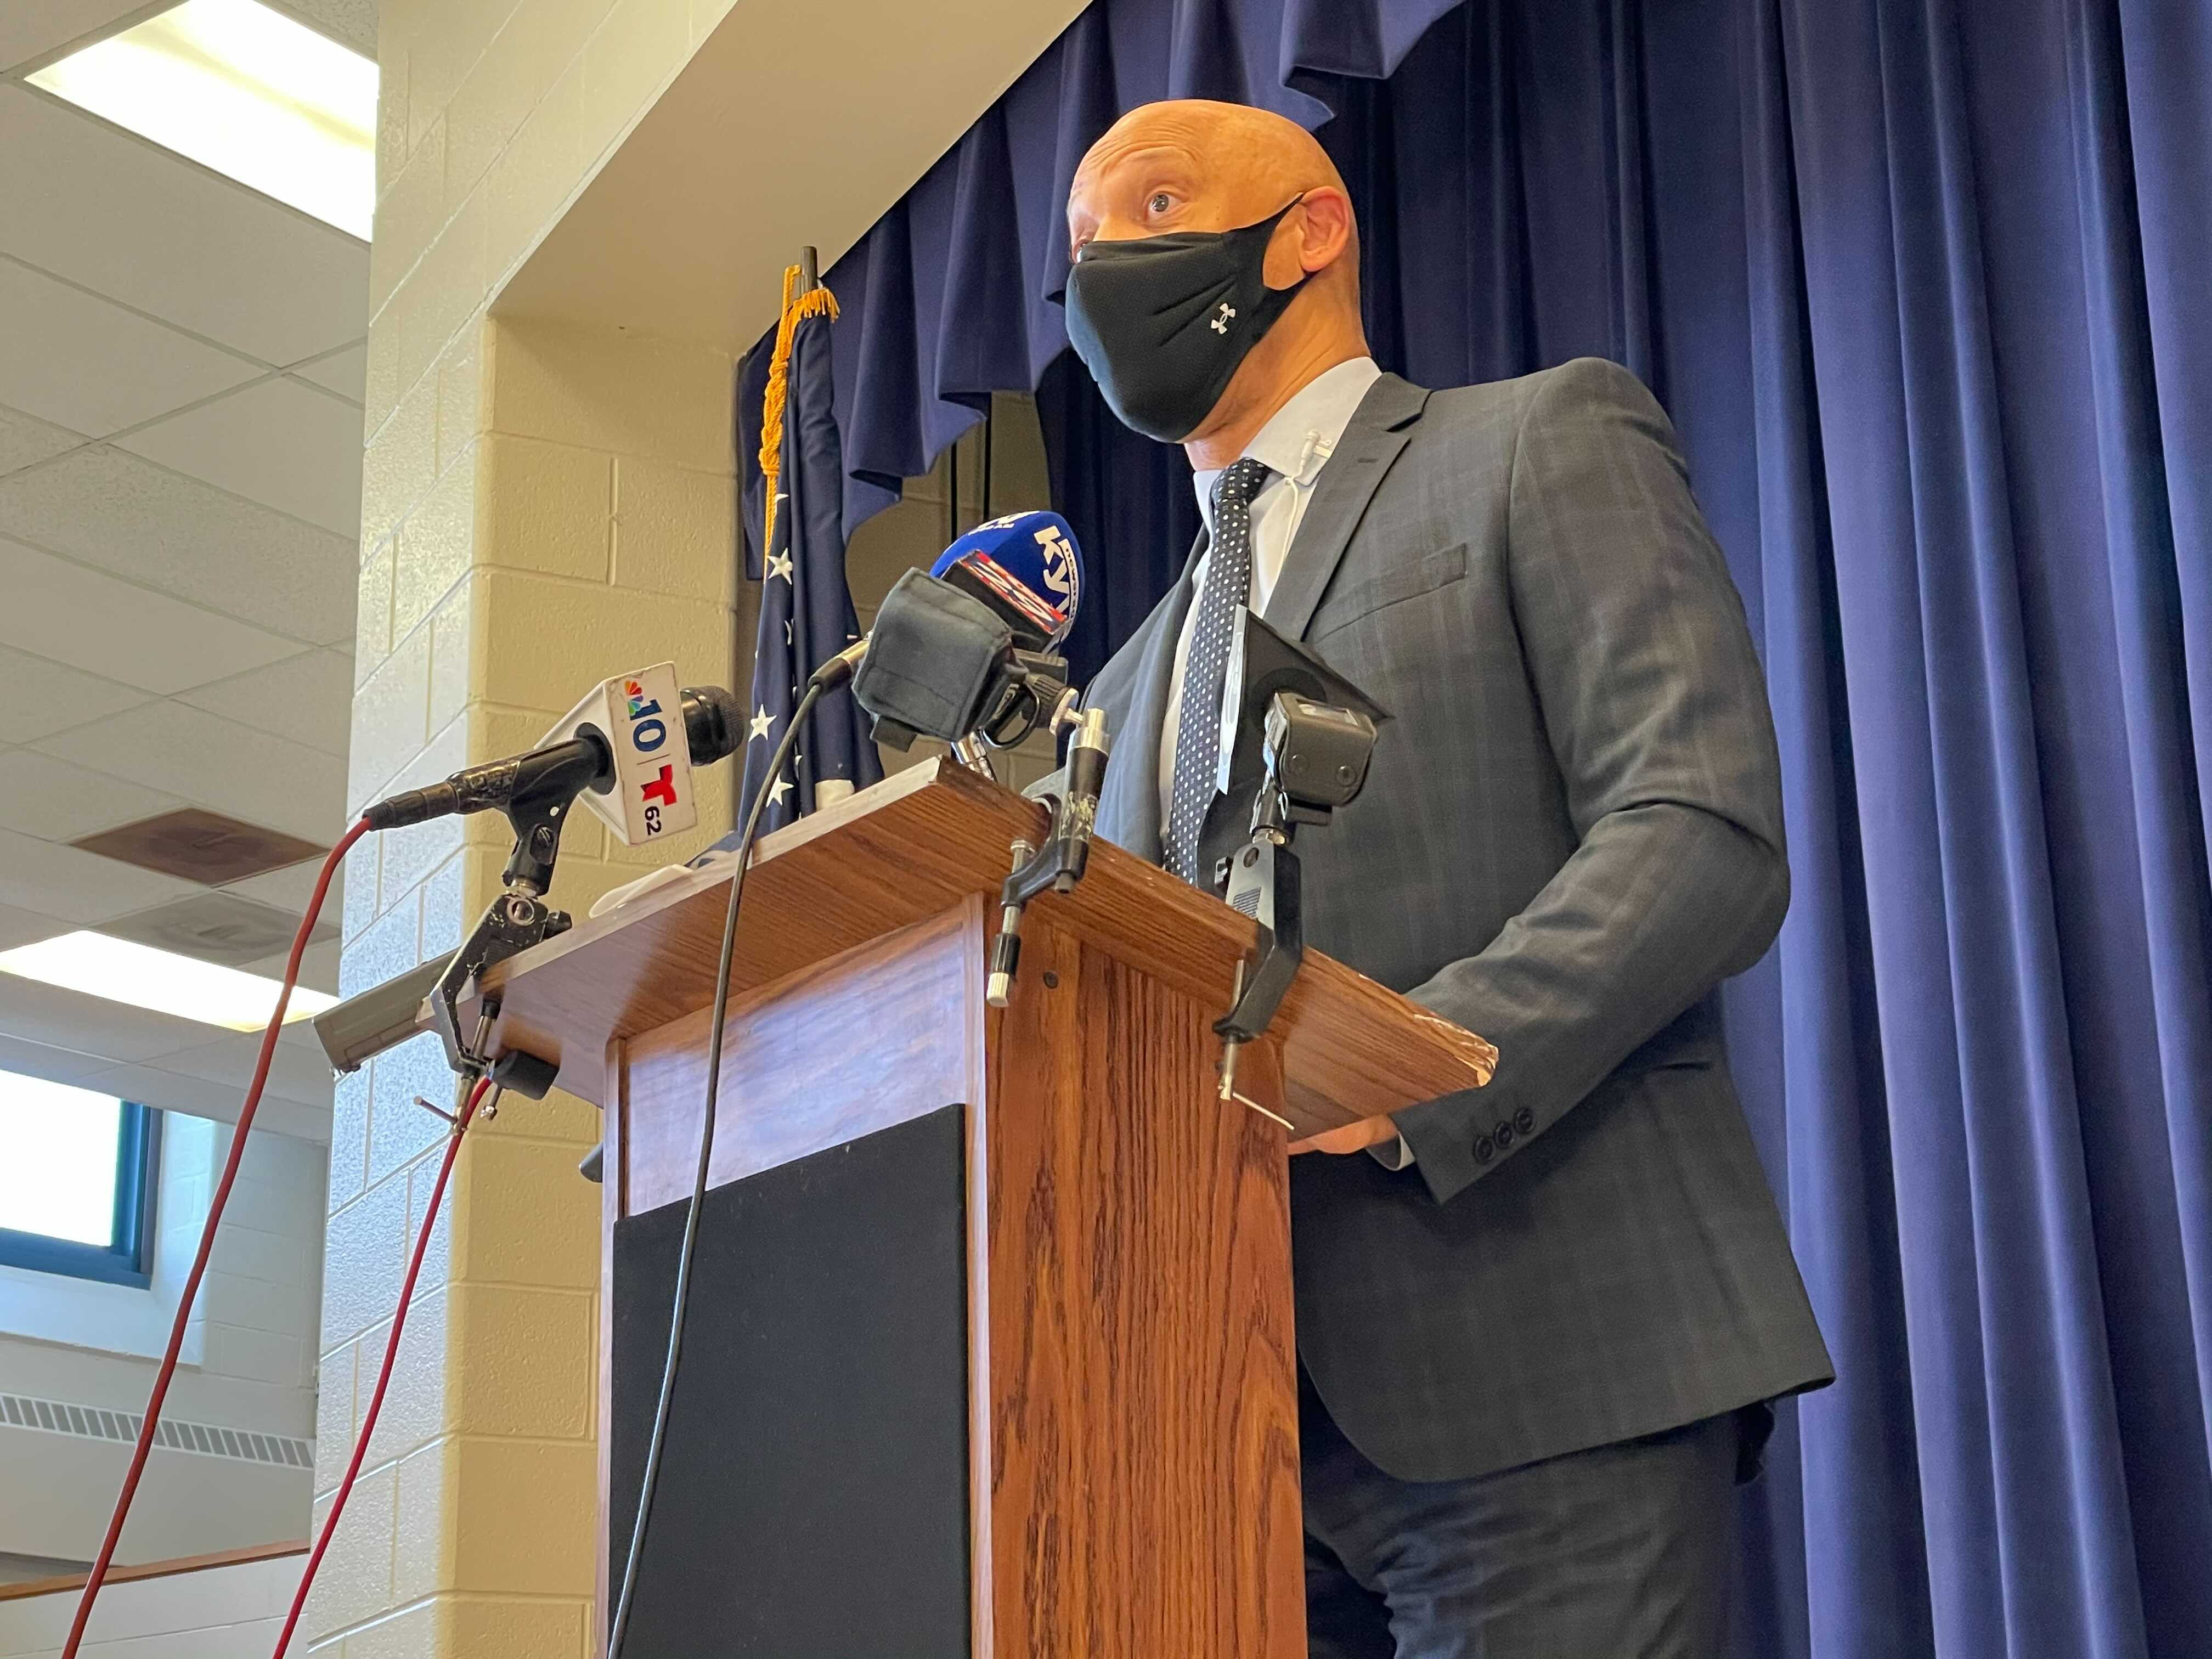 William Hite wearing a face mask standing at a podium with microphones.